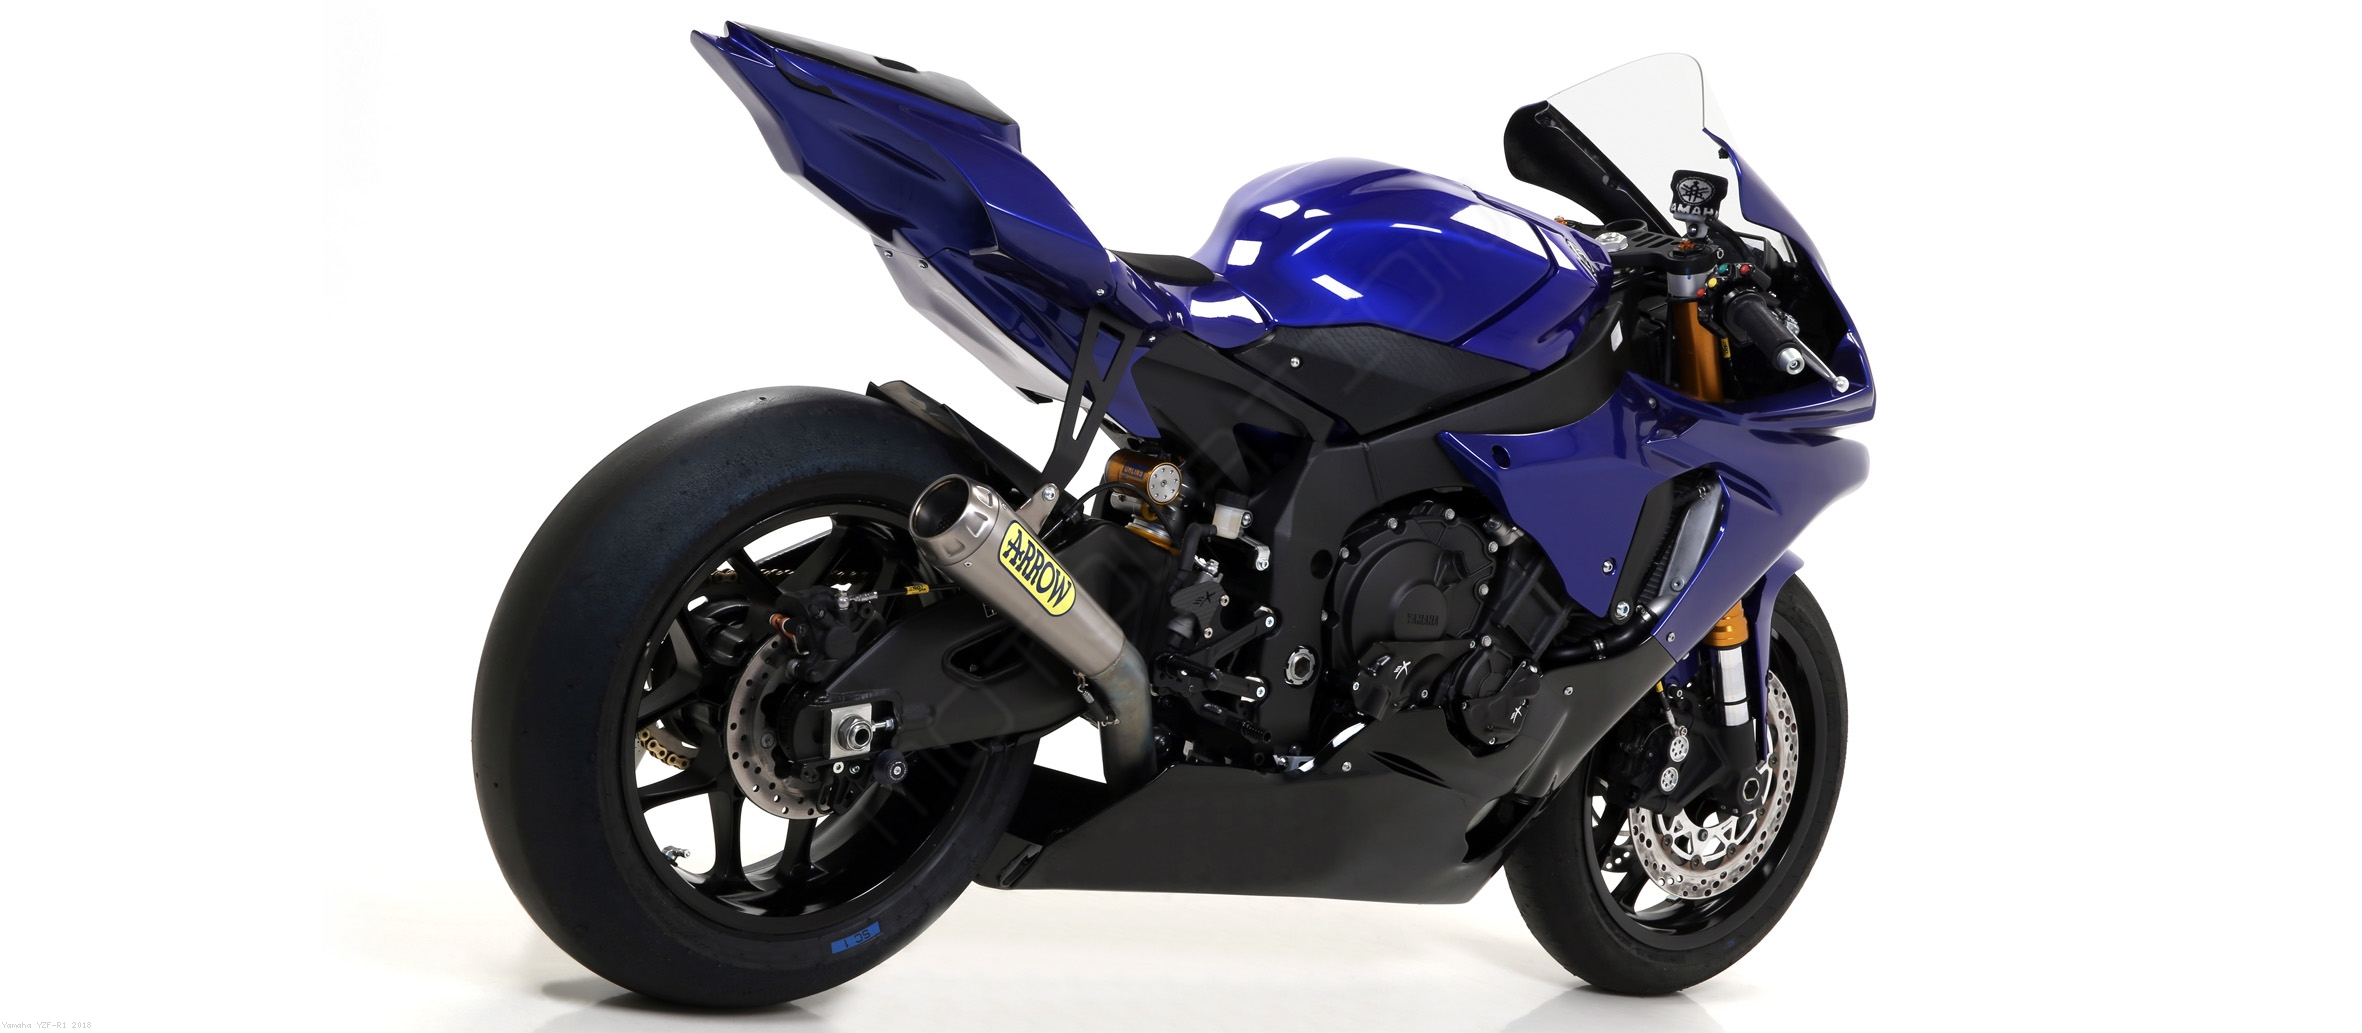 competition evo full exhaust system by arrow yamaha yzf r1 2018 71178cp. Black Bedroom Furniture Sets. Home Design Ideas